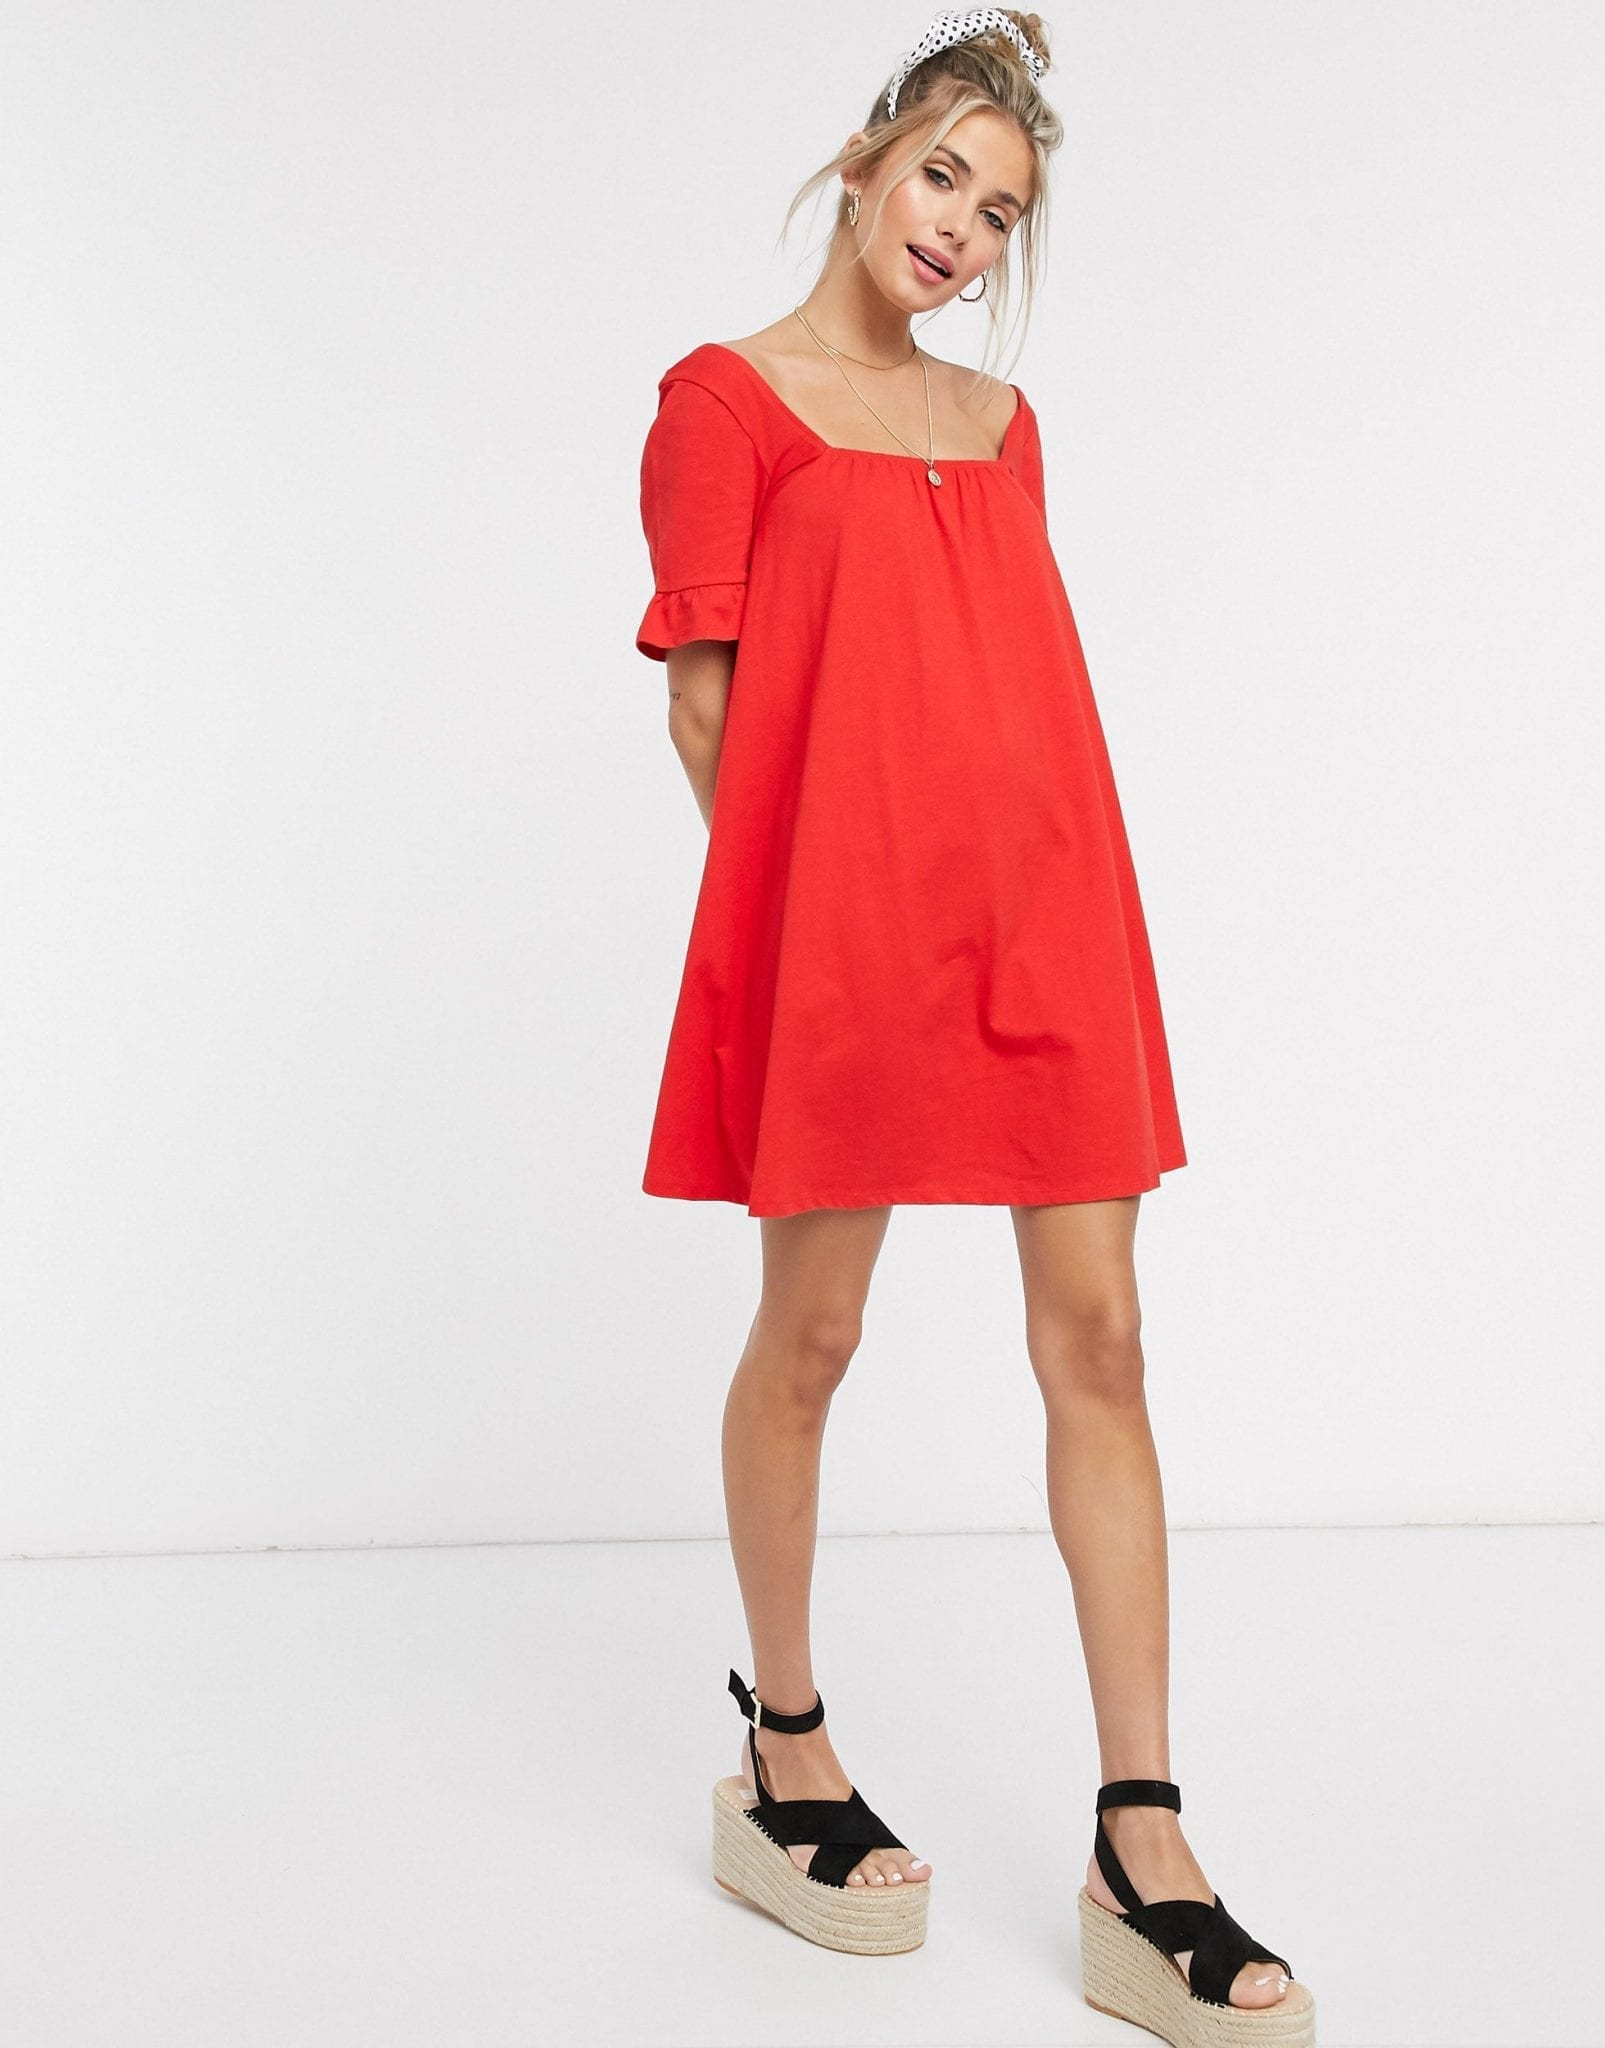 ASOS DESIGN Square Neck Frill Sleeve Smock Dress